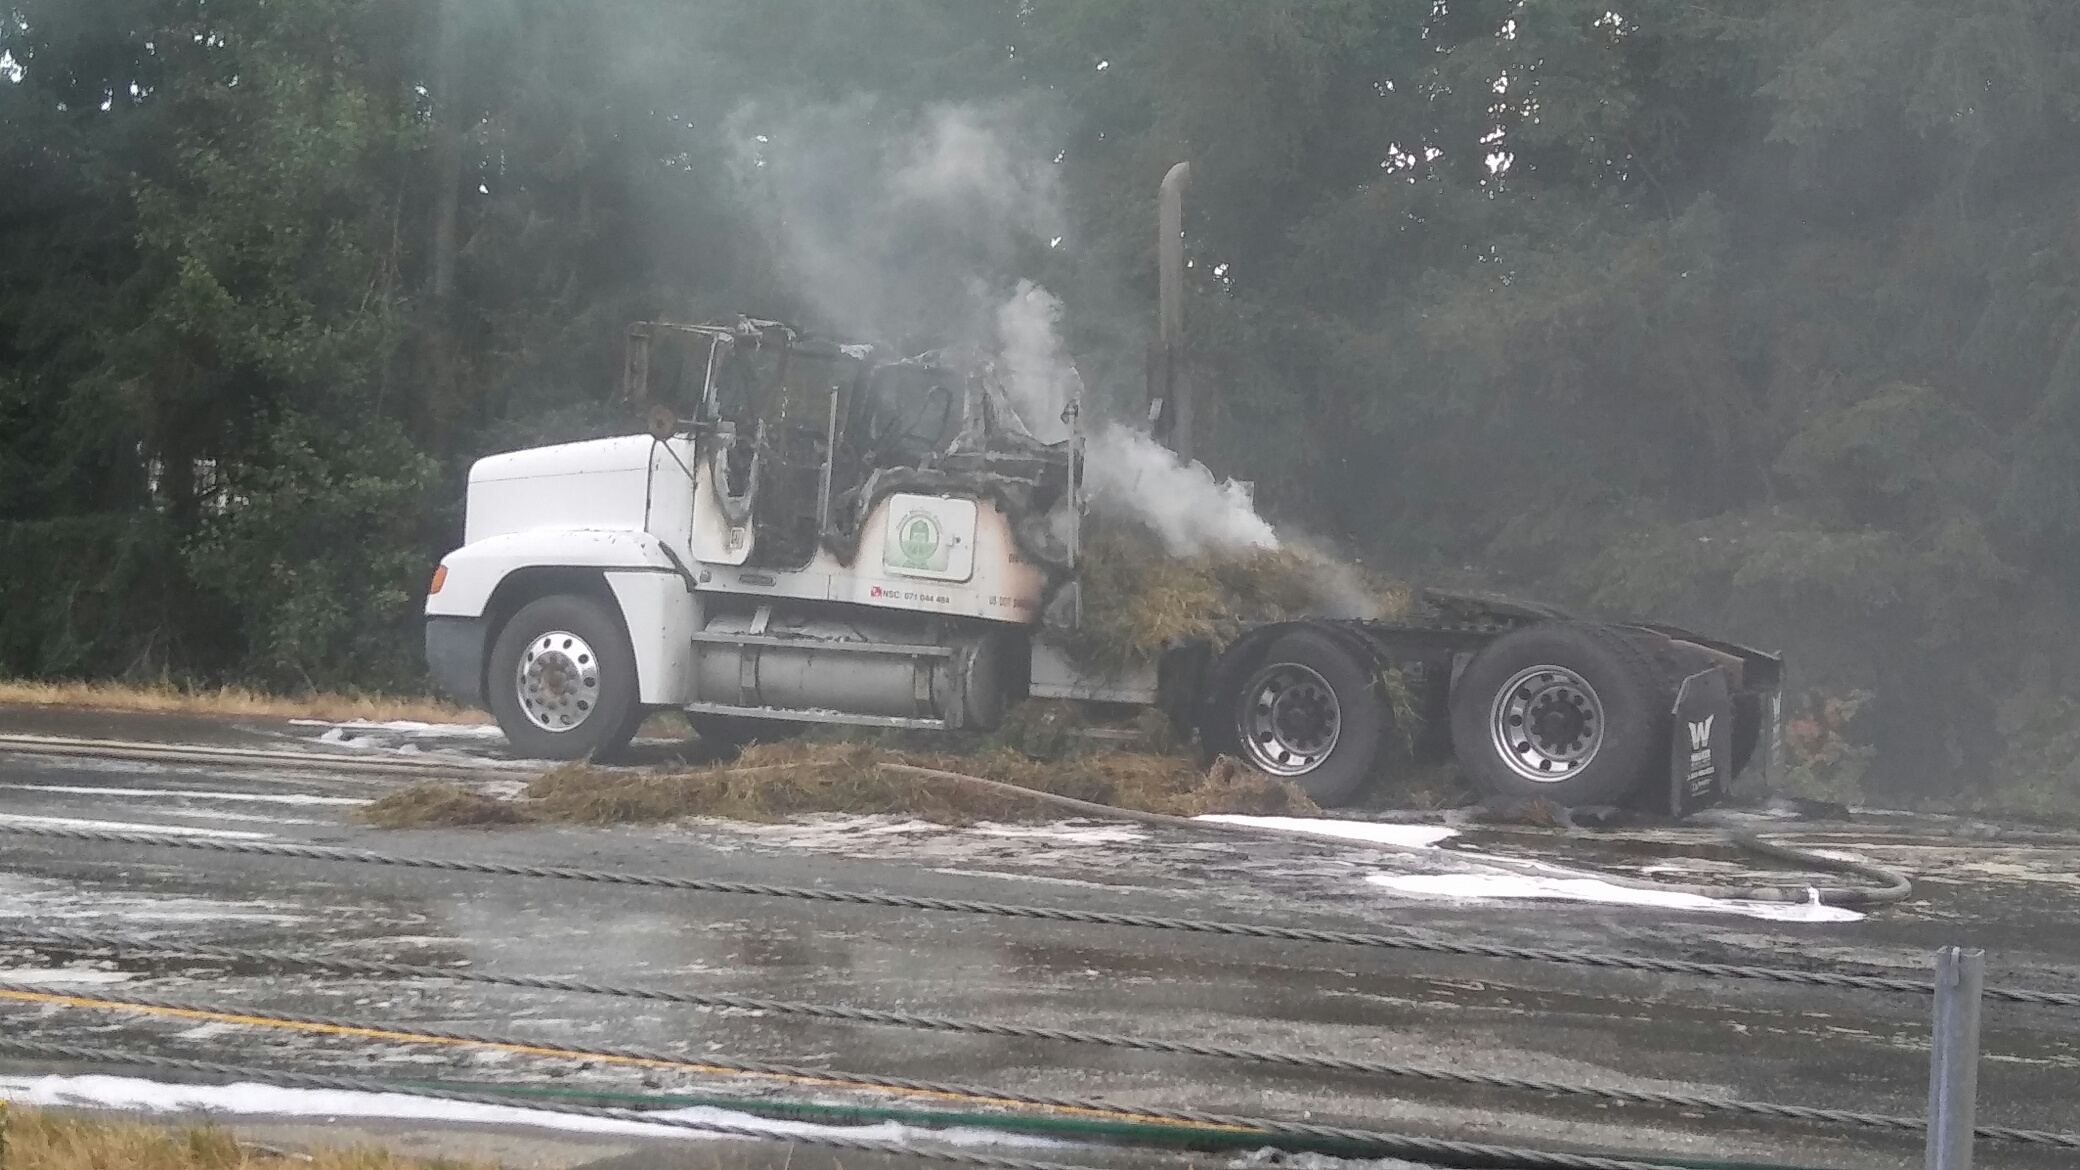 Truck on fire forces closure of Highway 99 southbound